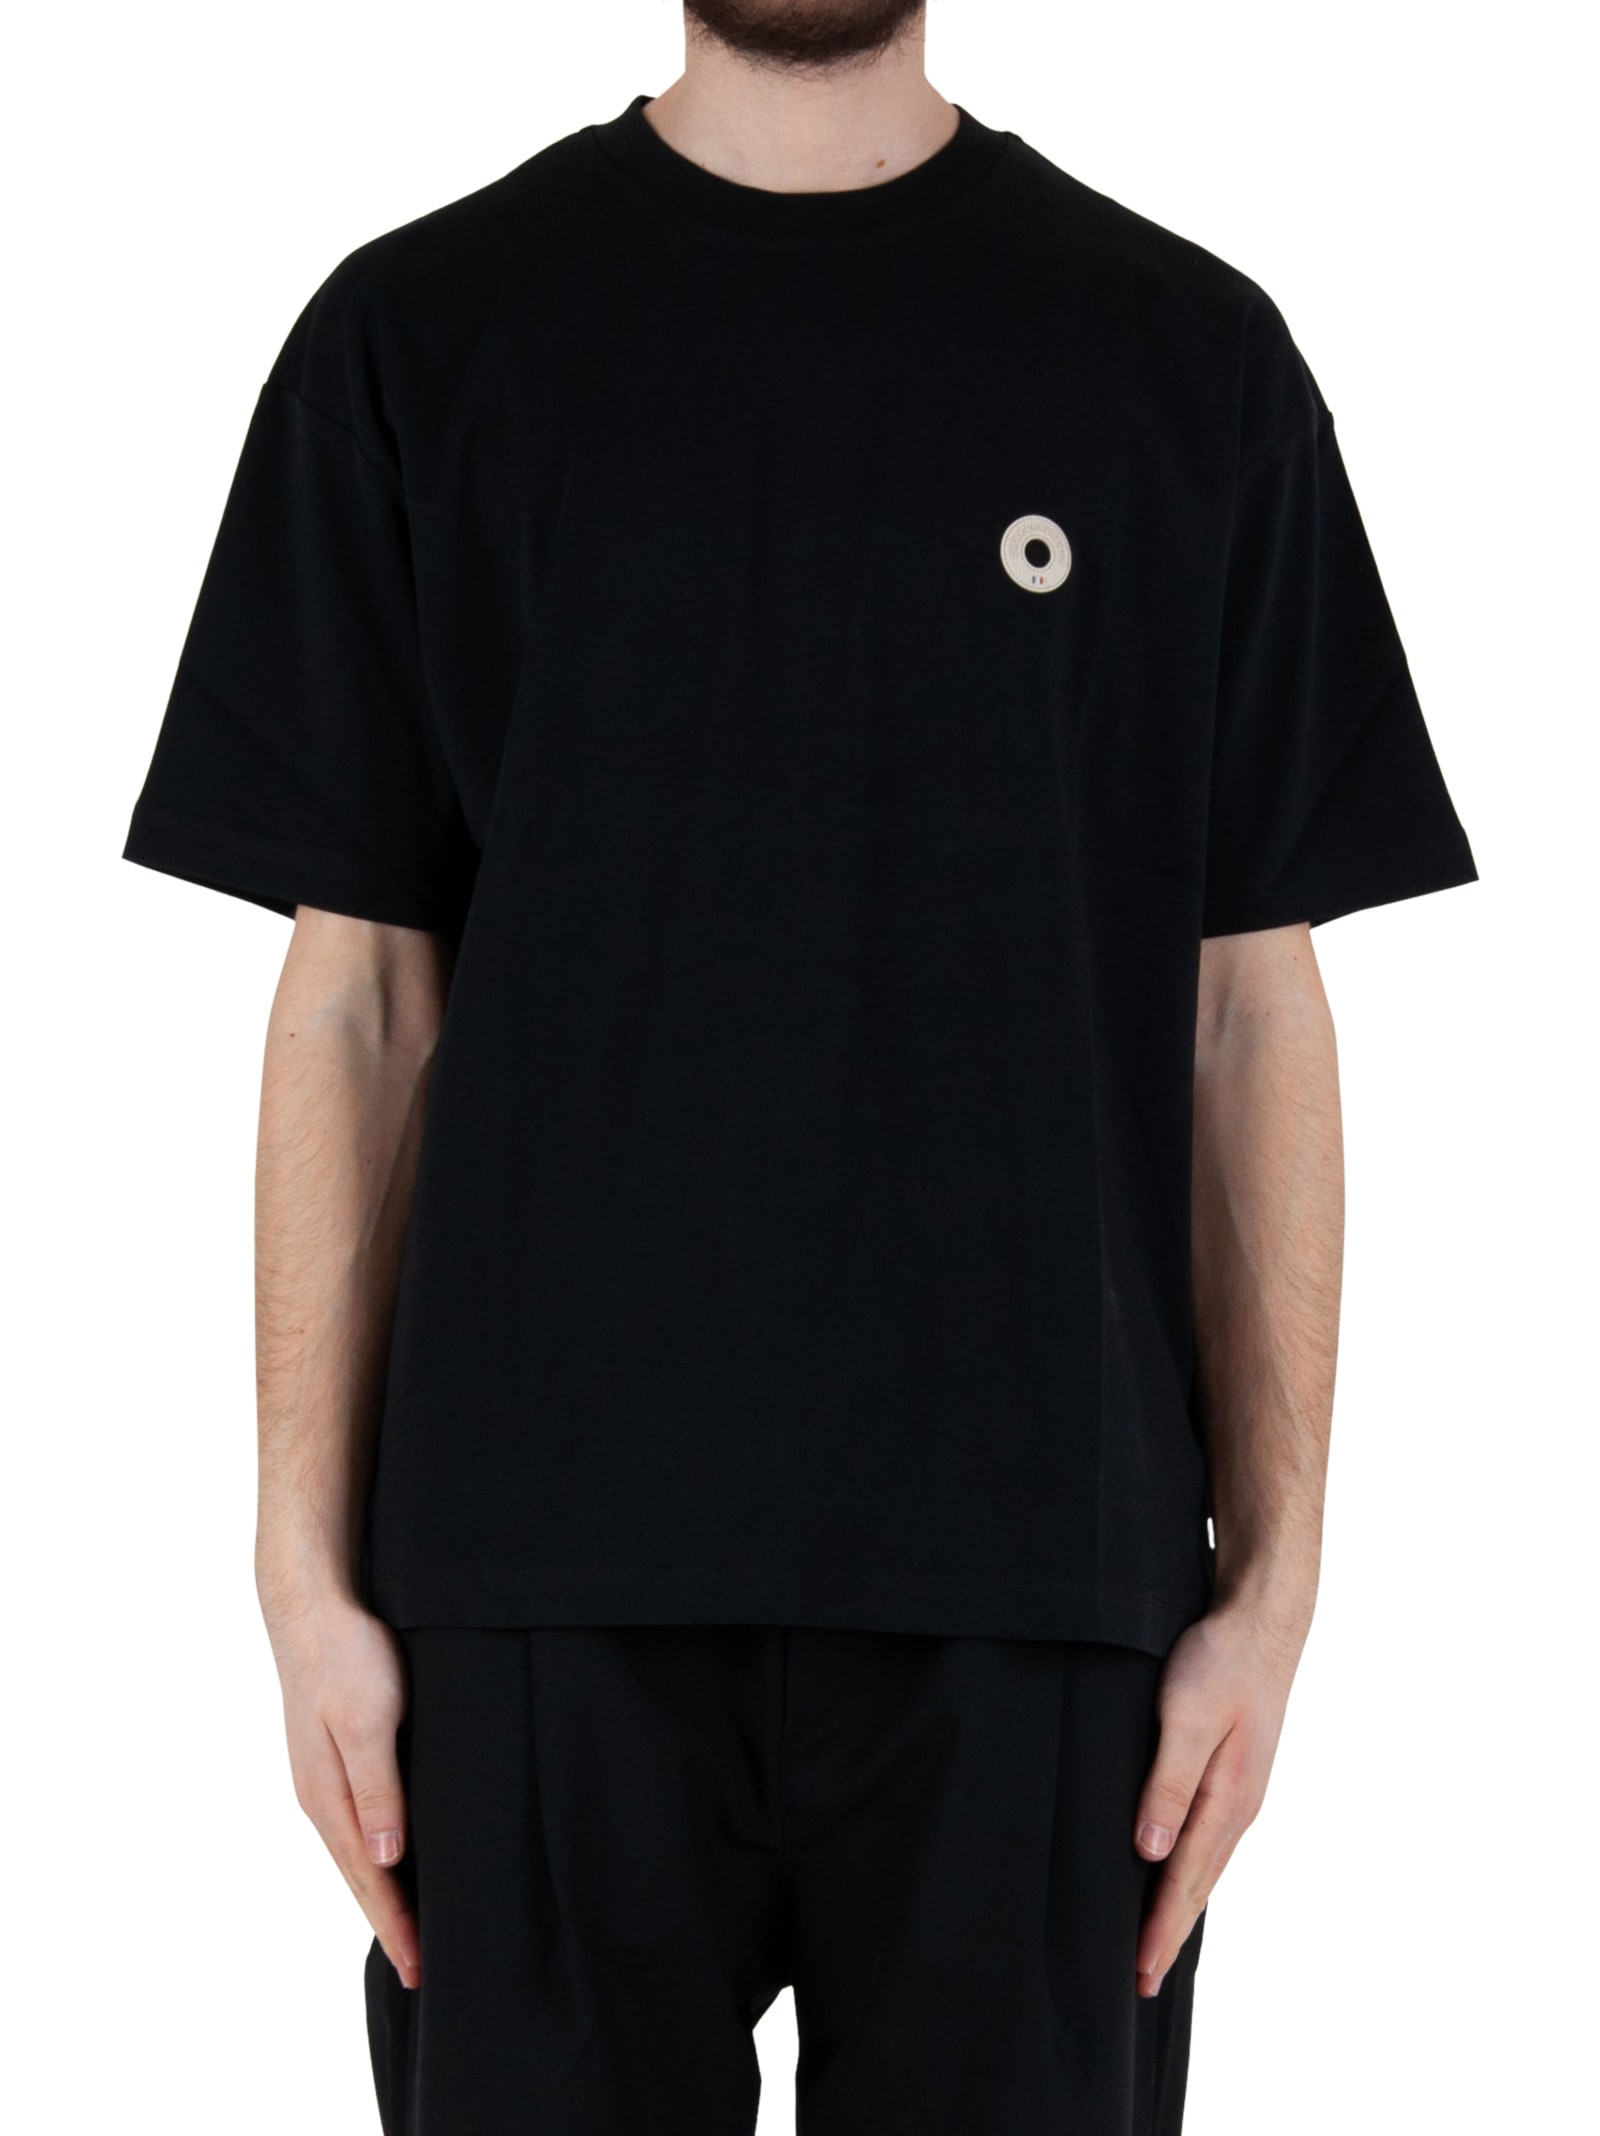 Drôle De Monsieur BACKPRINT NFPM TEE - BLACK